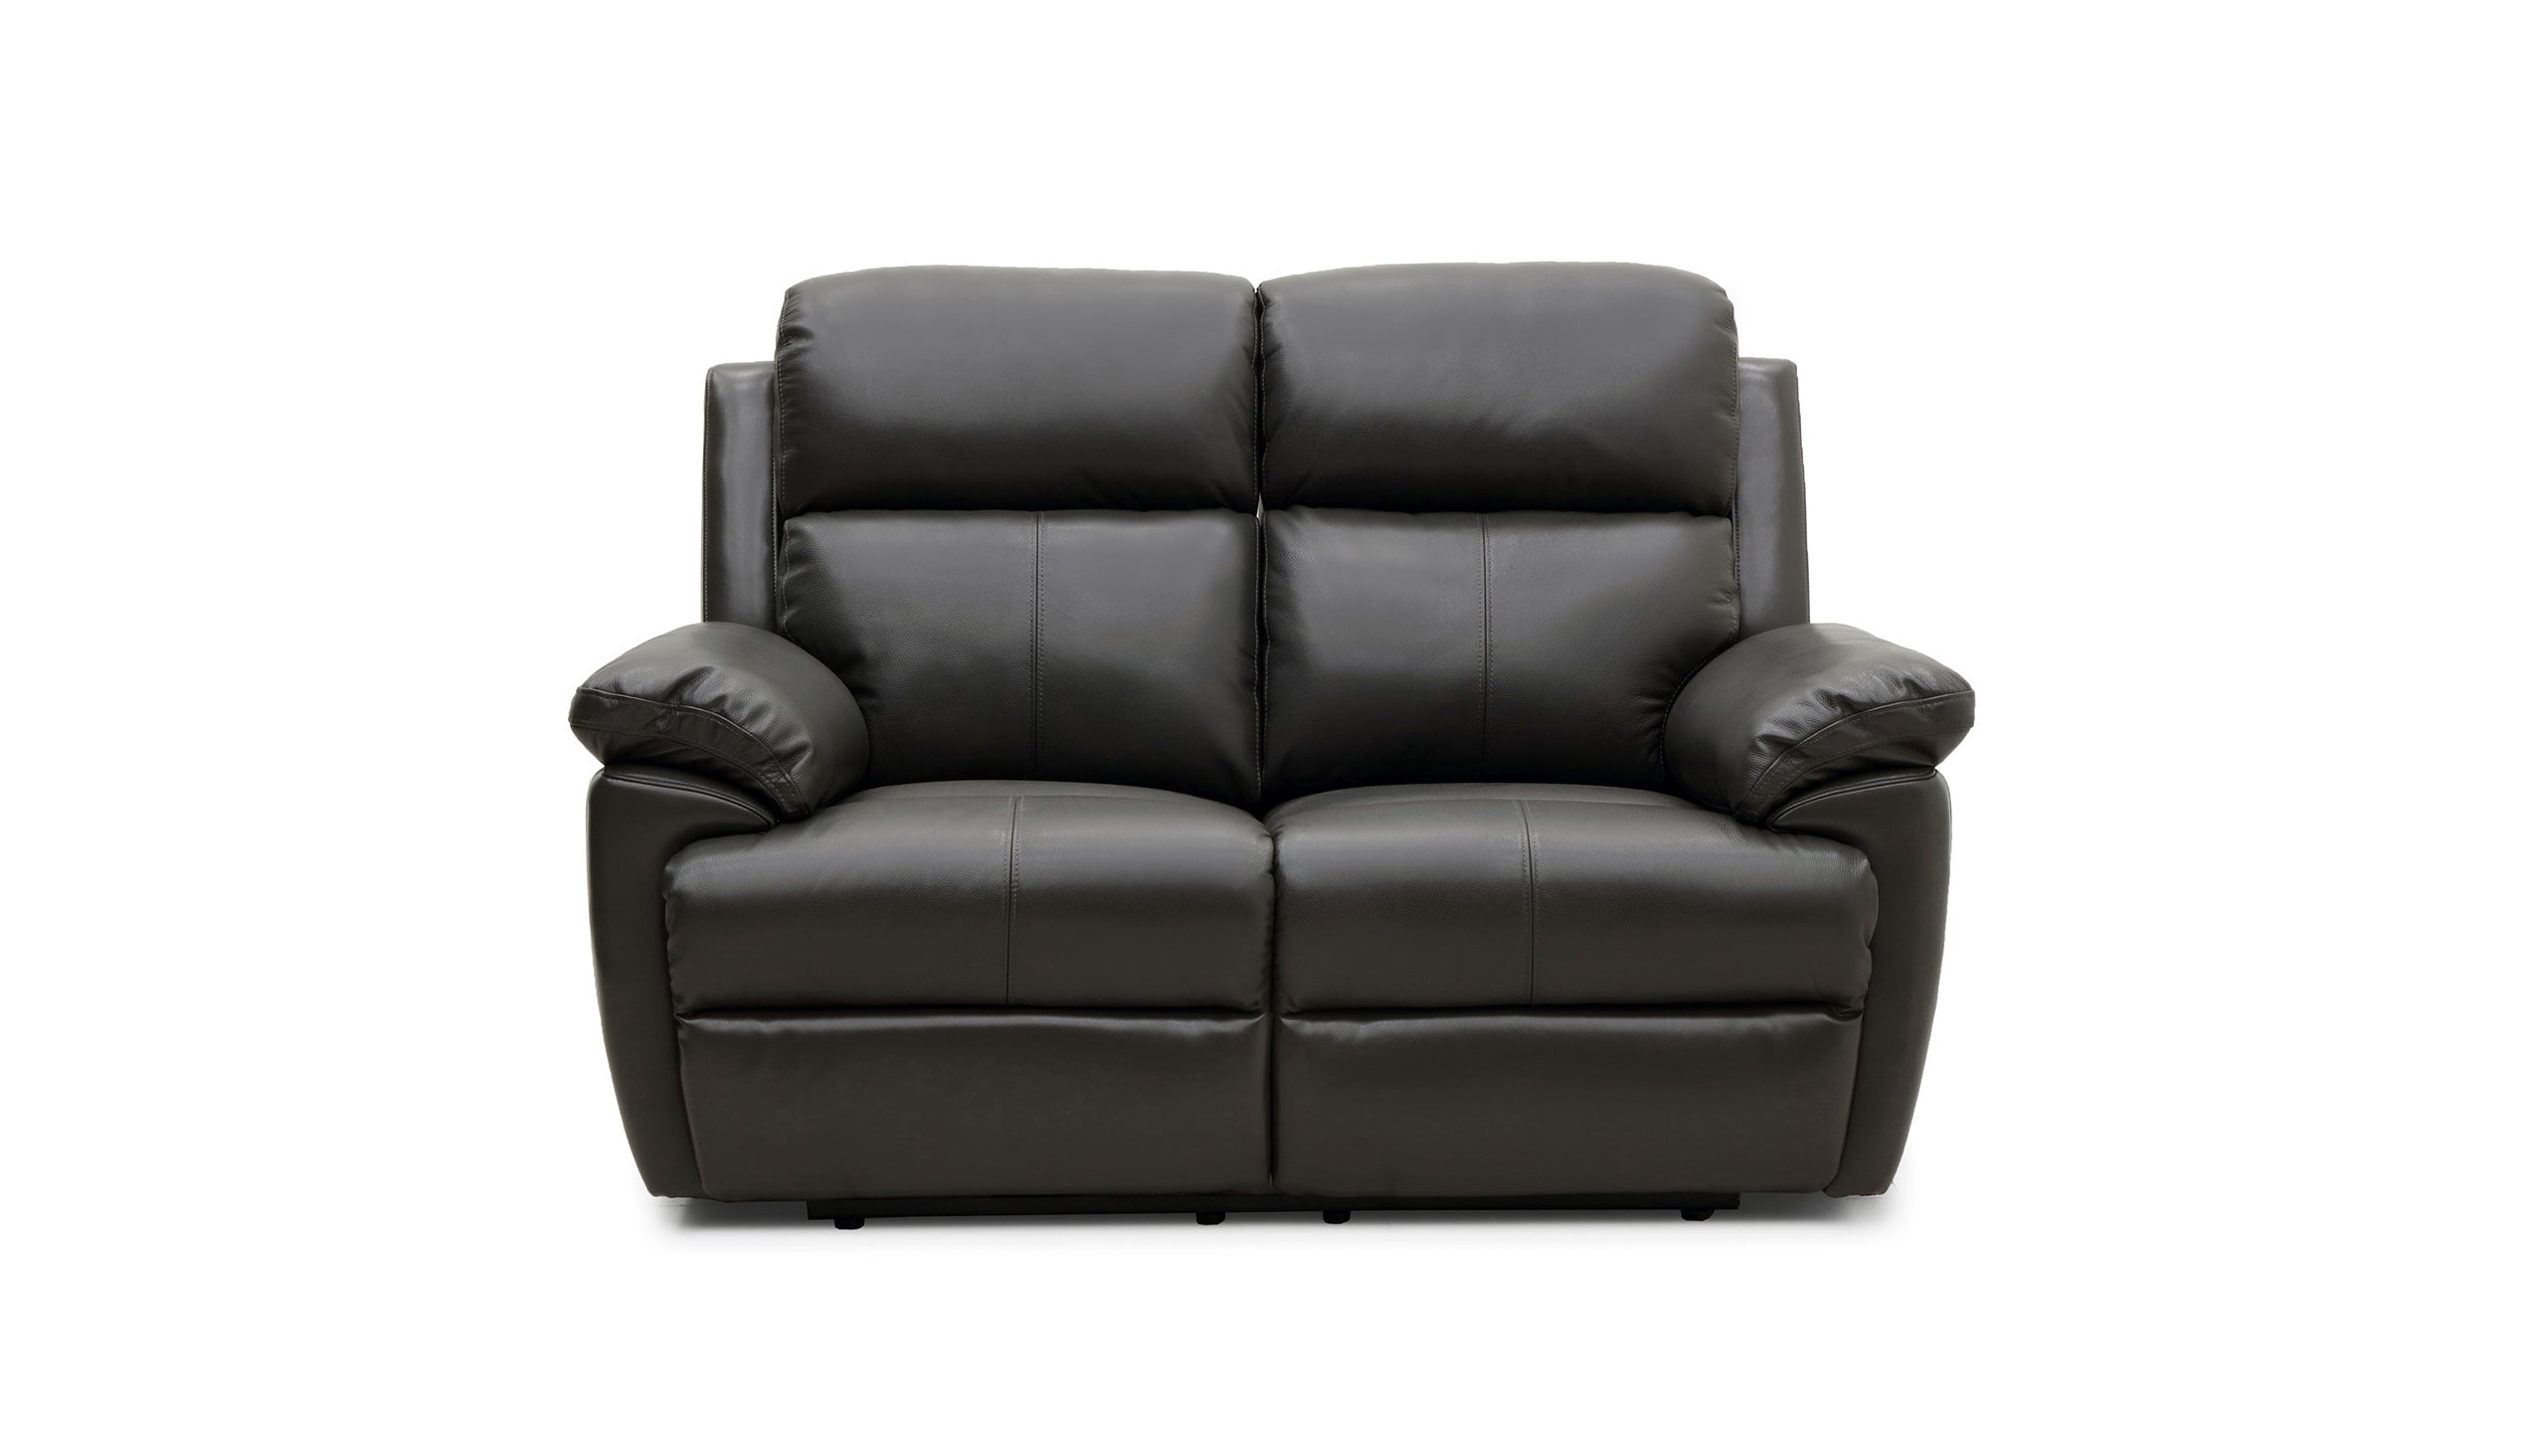 Blair 2 Seater Manual Recliner Sofa